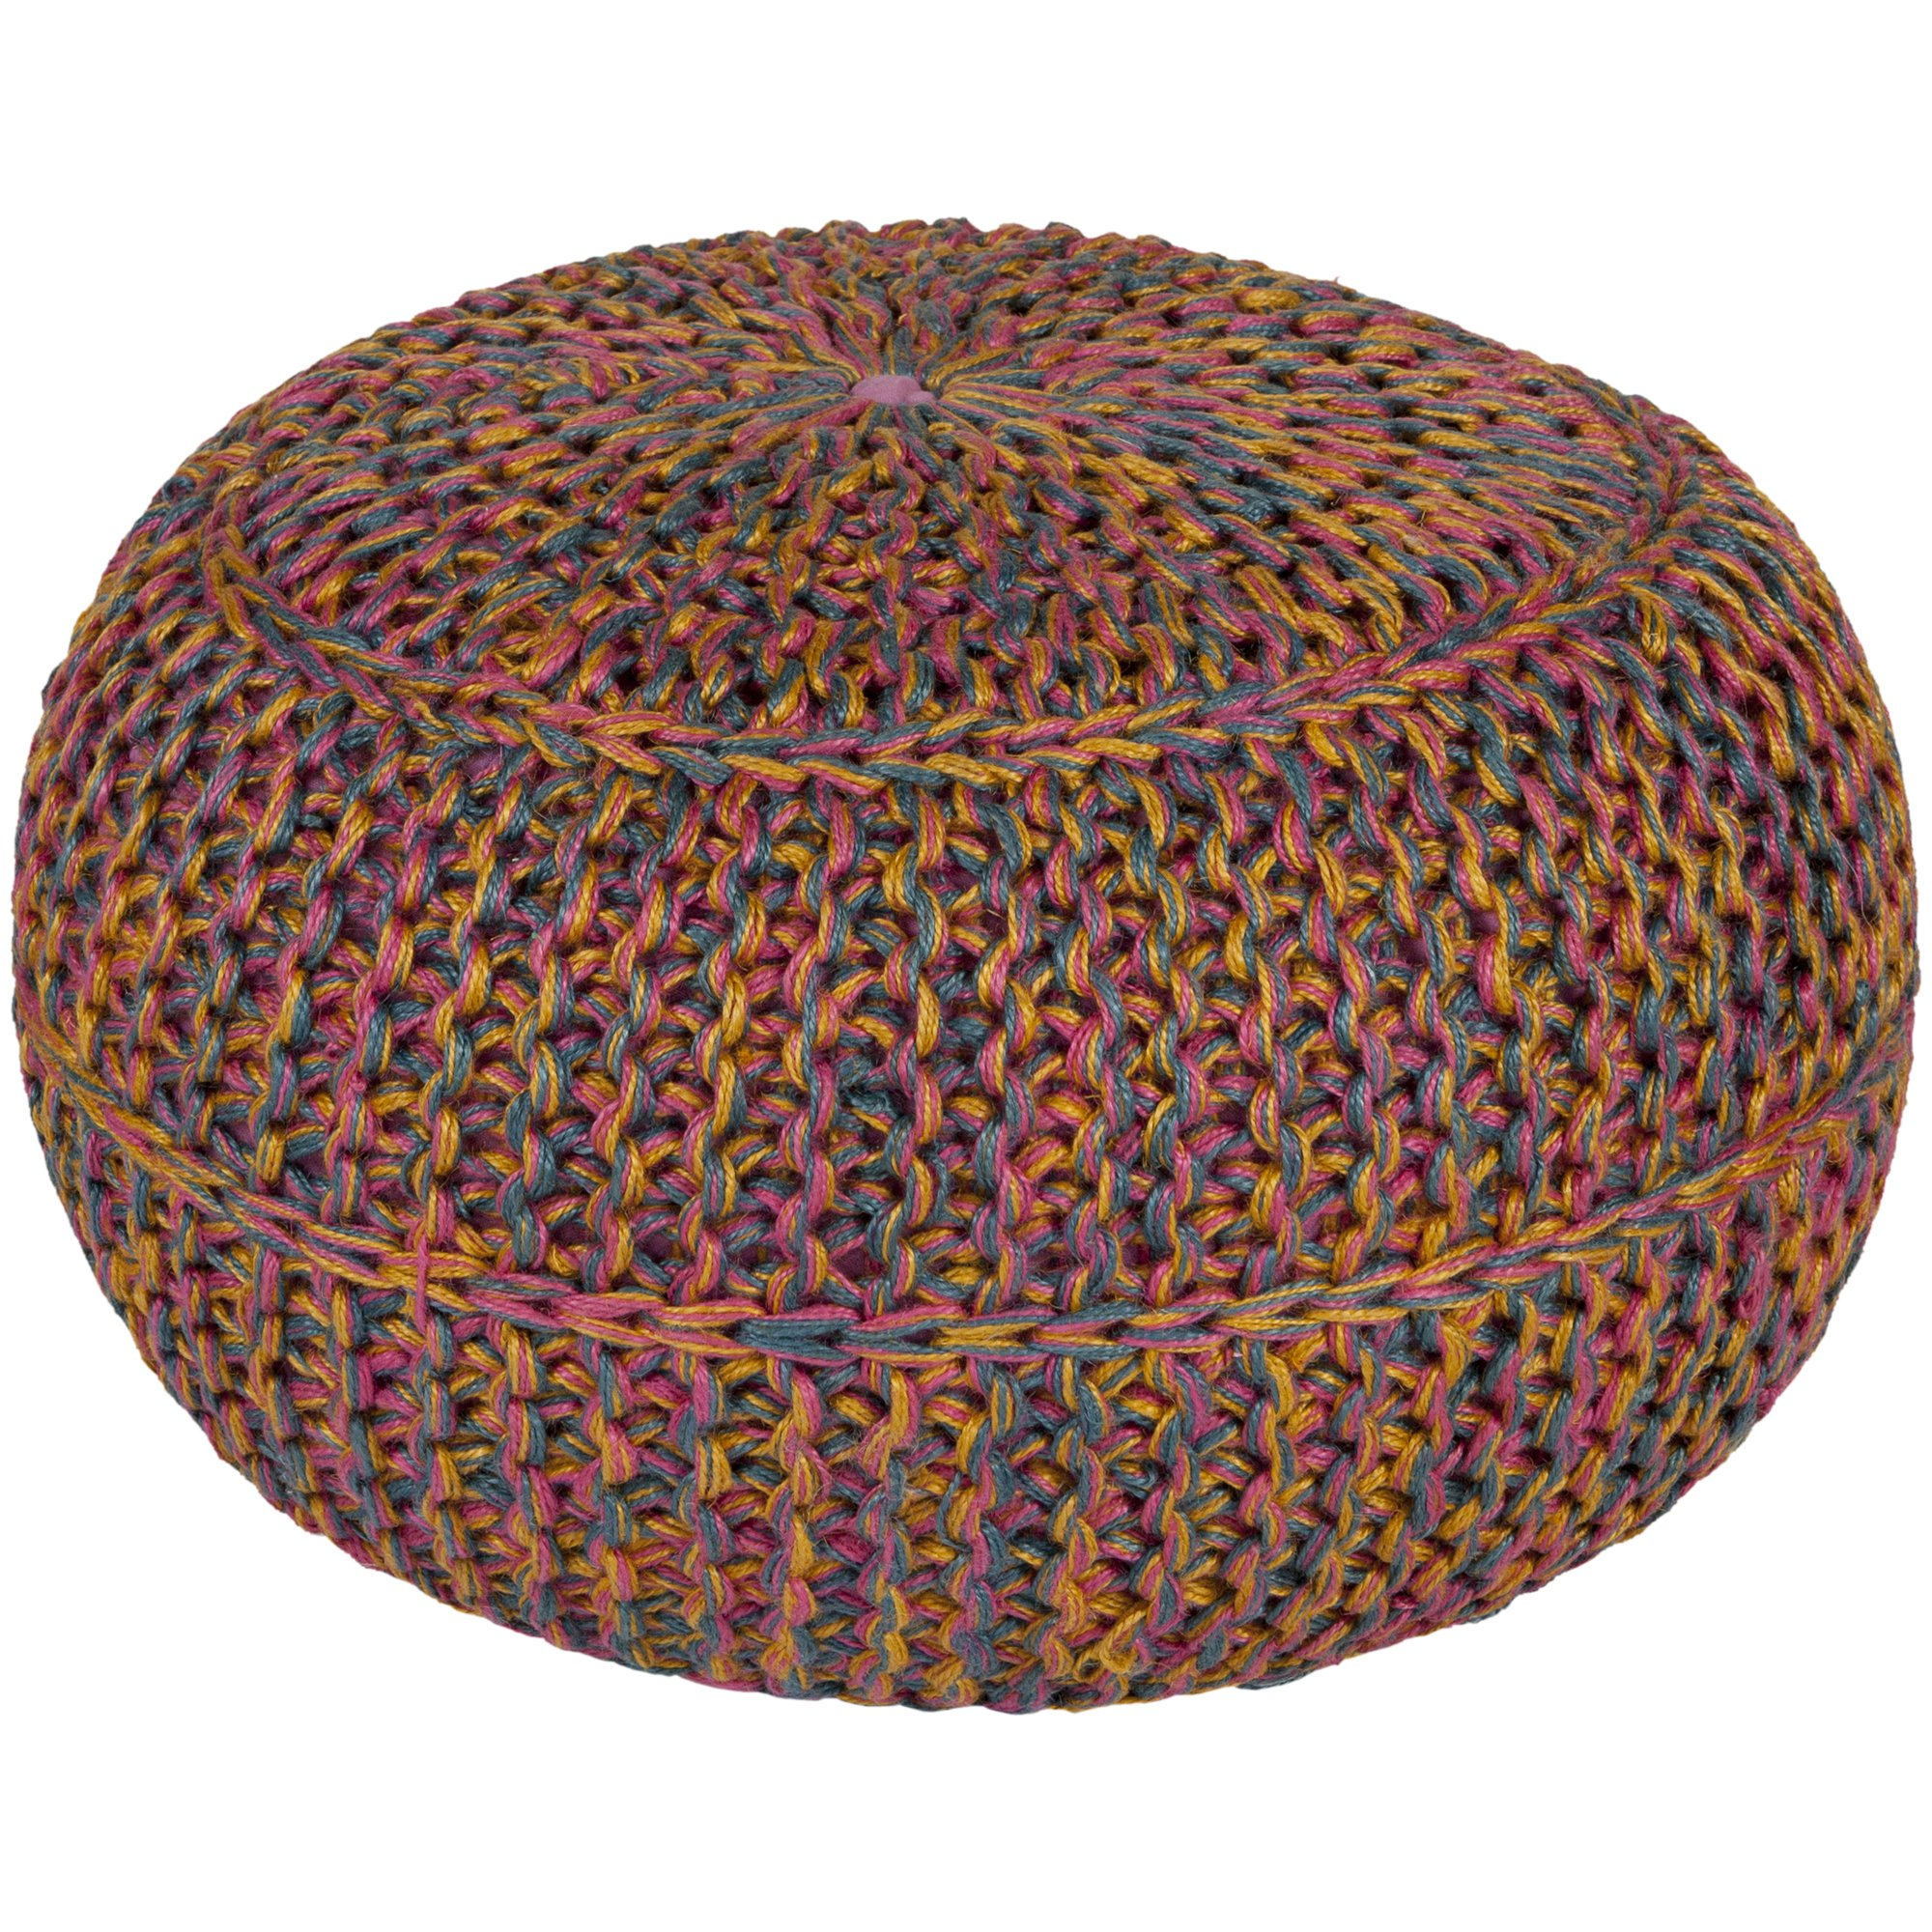 Surya WTPF-002 100-Percent Jute Pouf, 20-Inch by 20-Inch by 14-Inch, Carnation/Gold/Teal